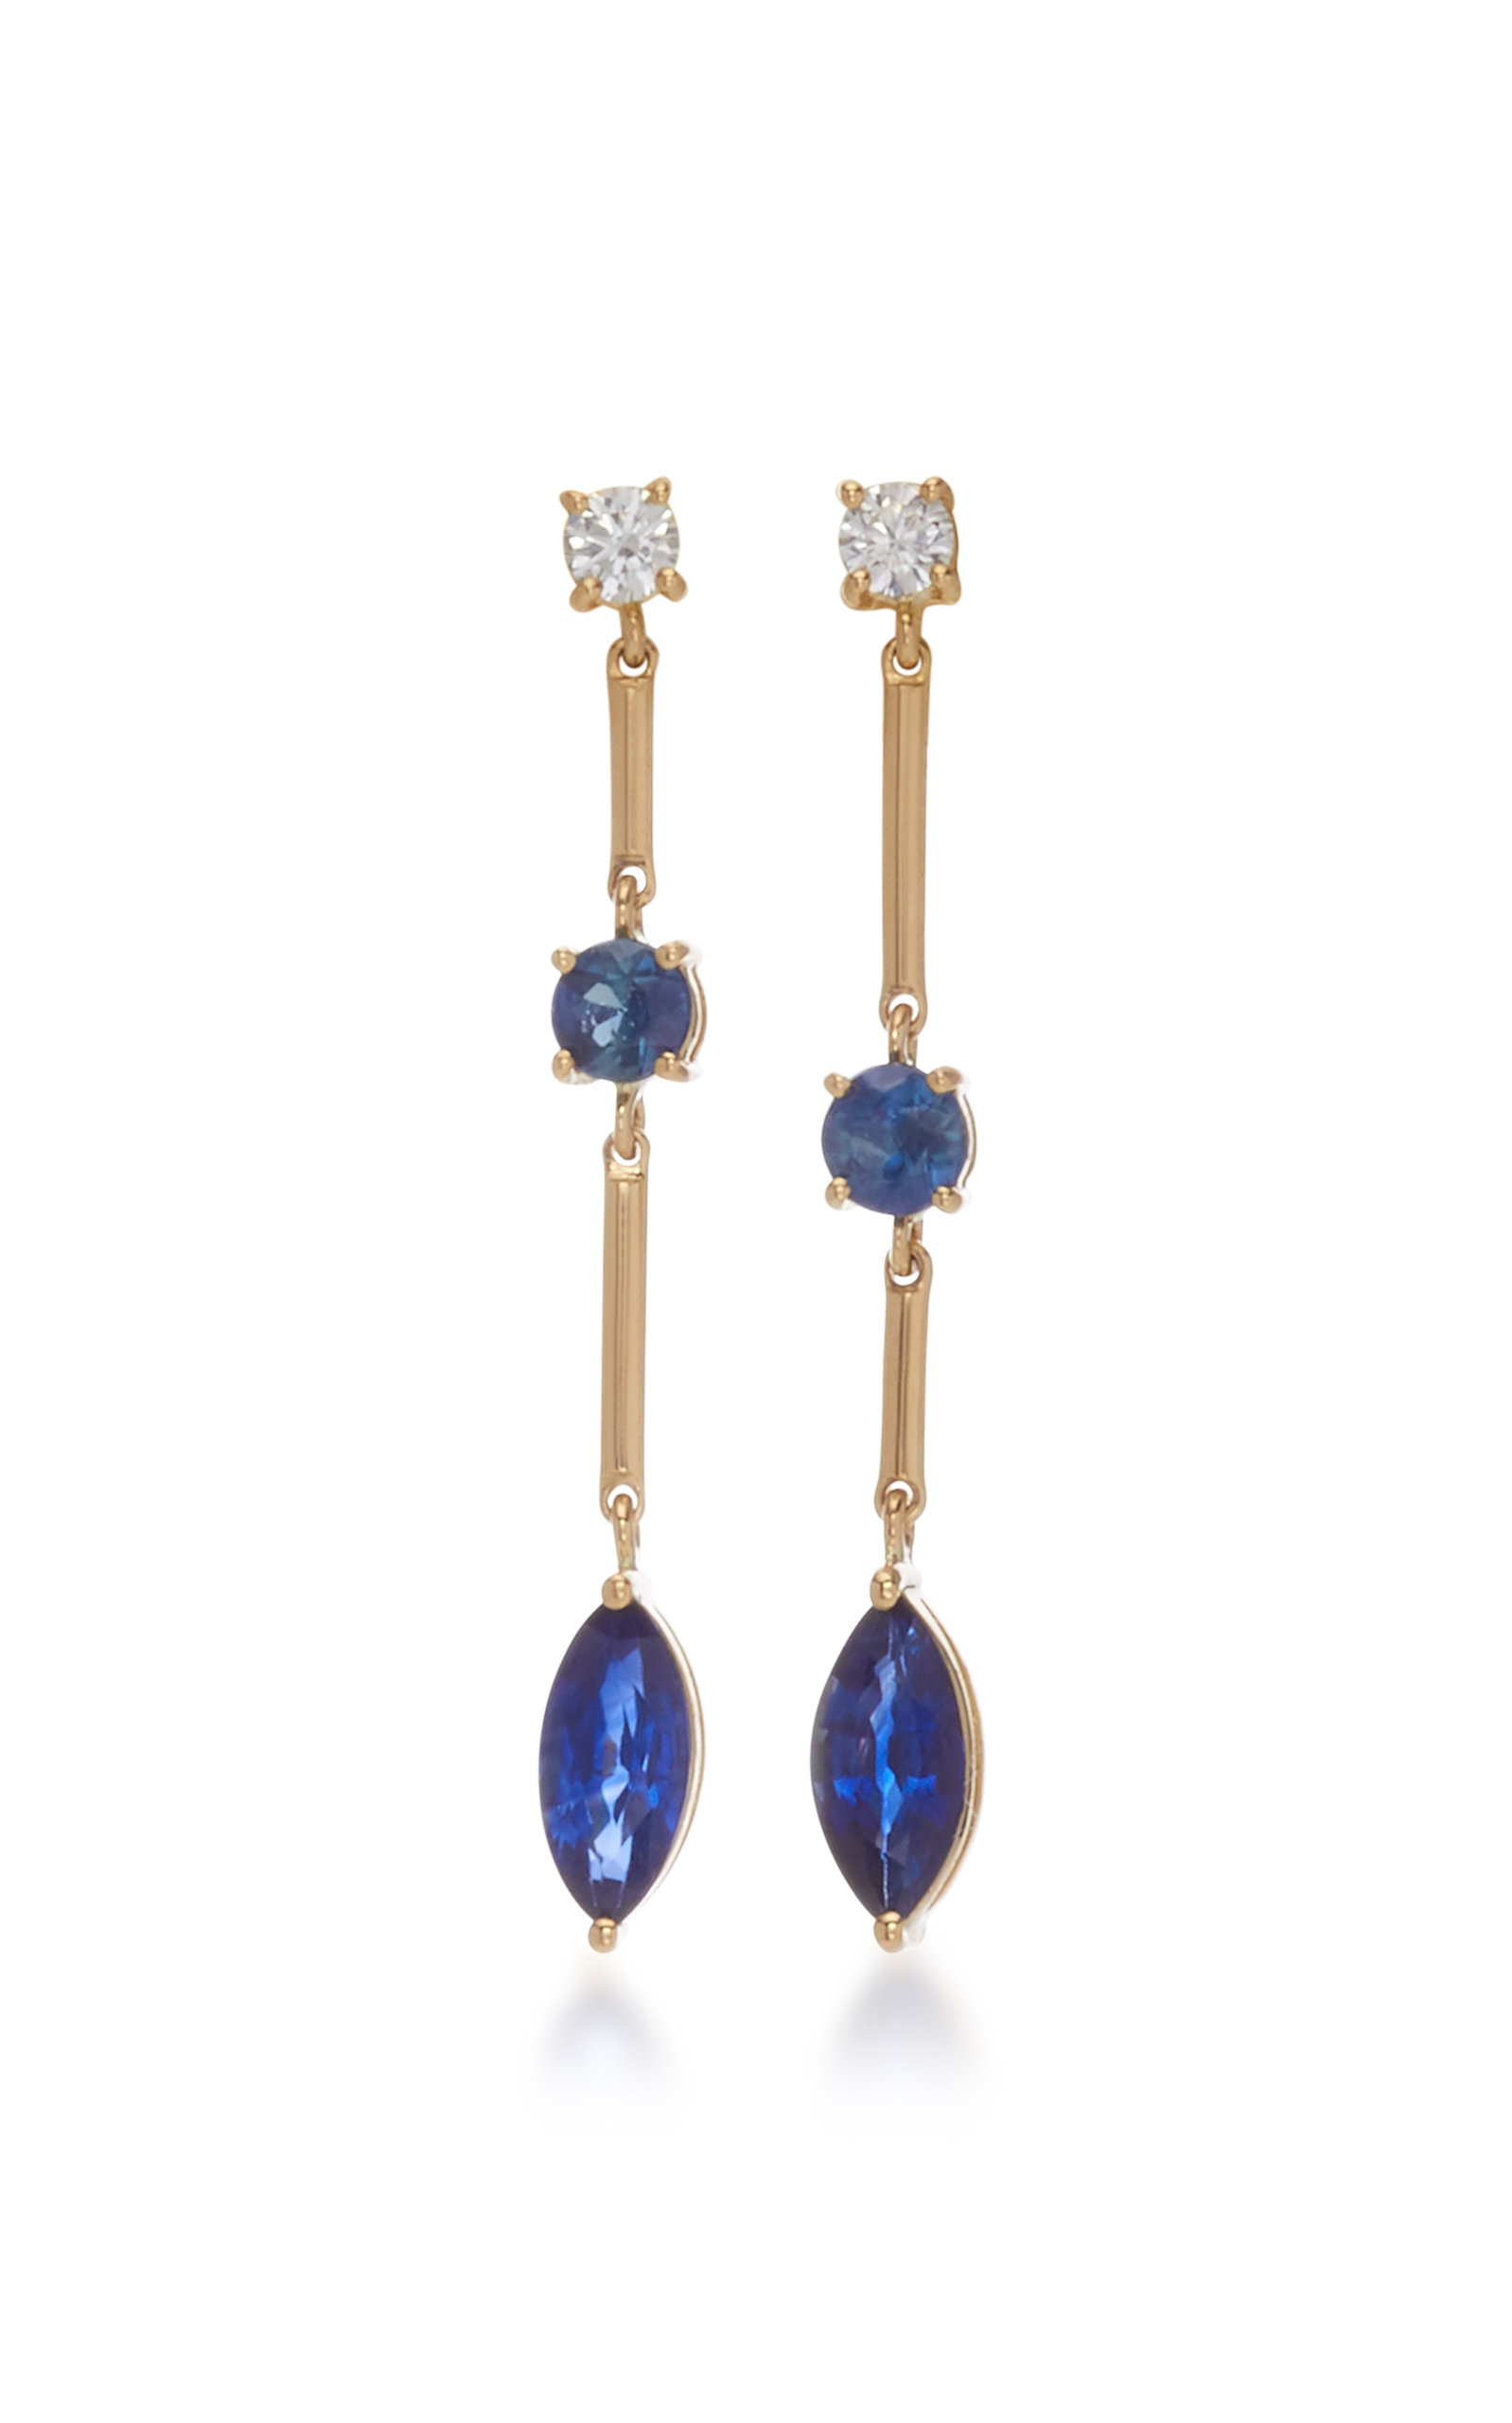 YI COLLECTION 18K Gold Sapphire And Diamond Earrings in Blue